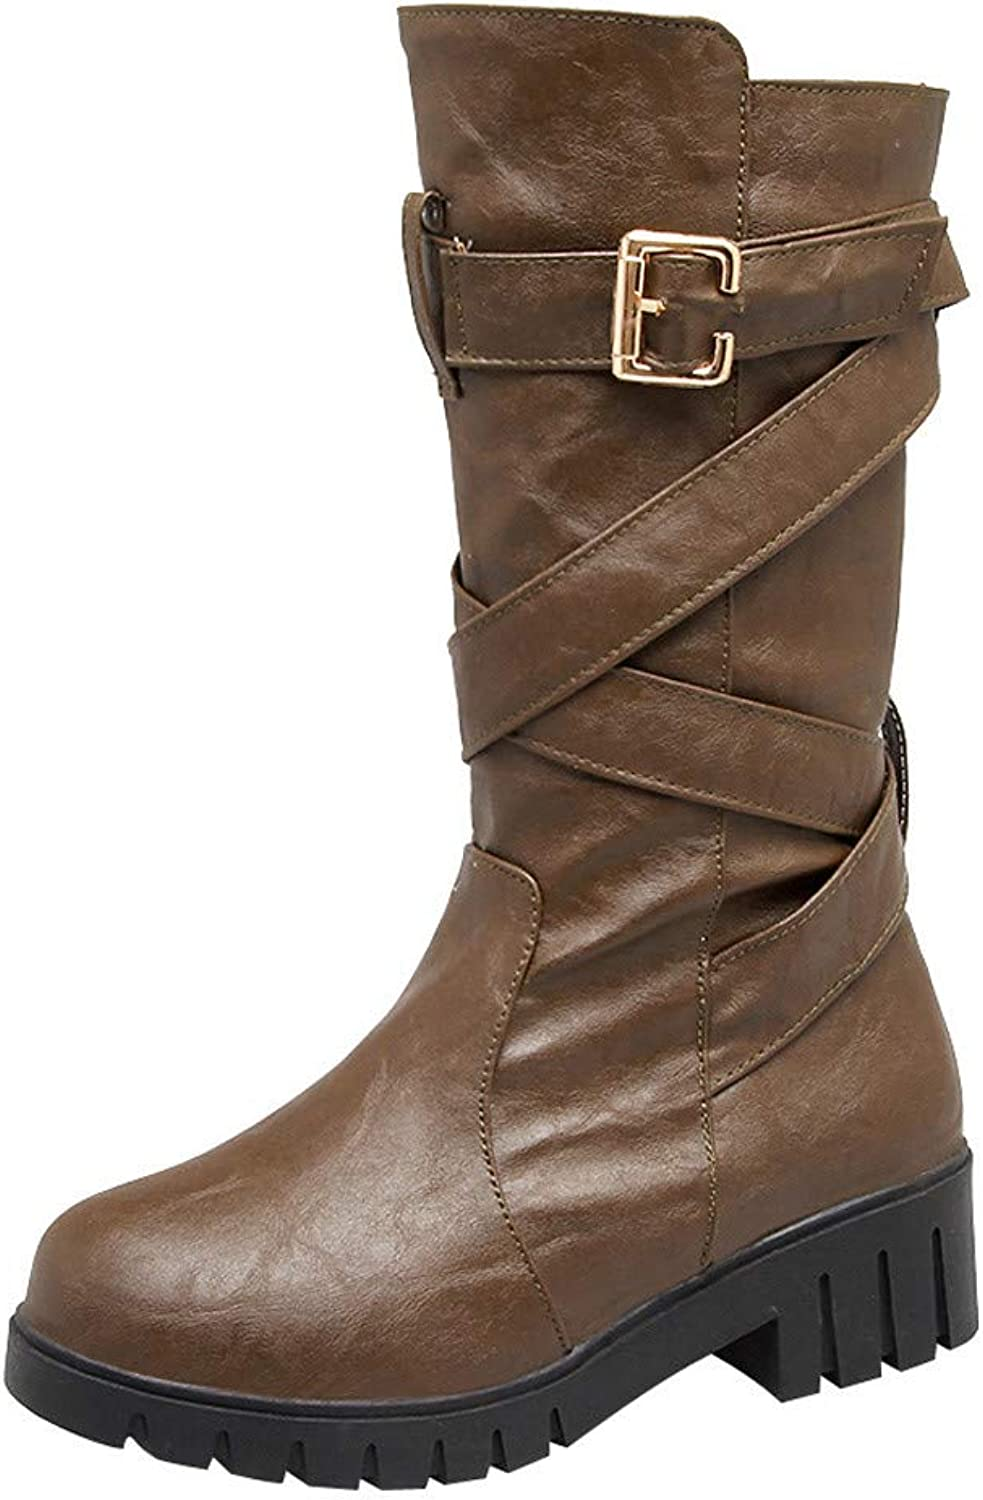 JESPER Women Thick Square Heel Mid-Calf Boots Retro Buckle Strap Round Toe Boots shoes